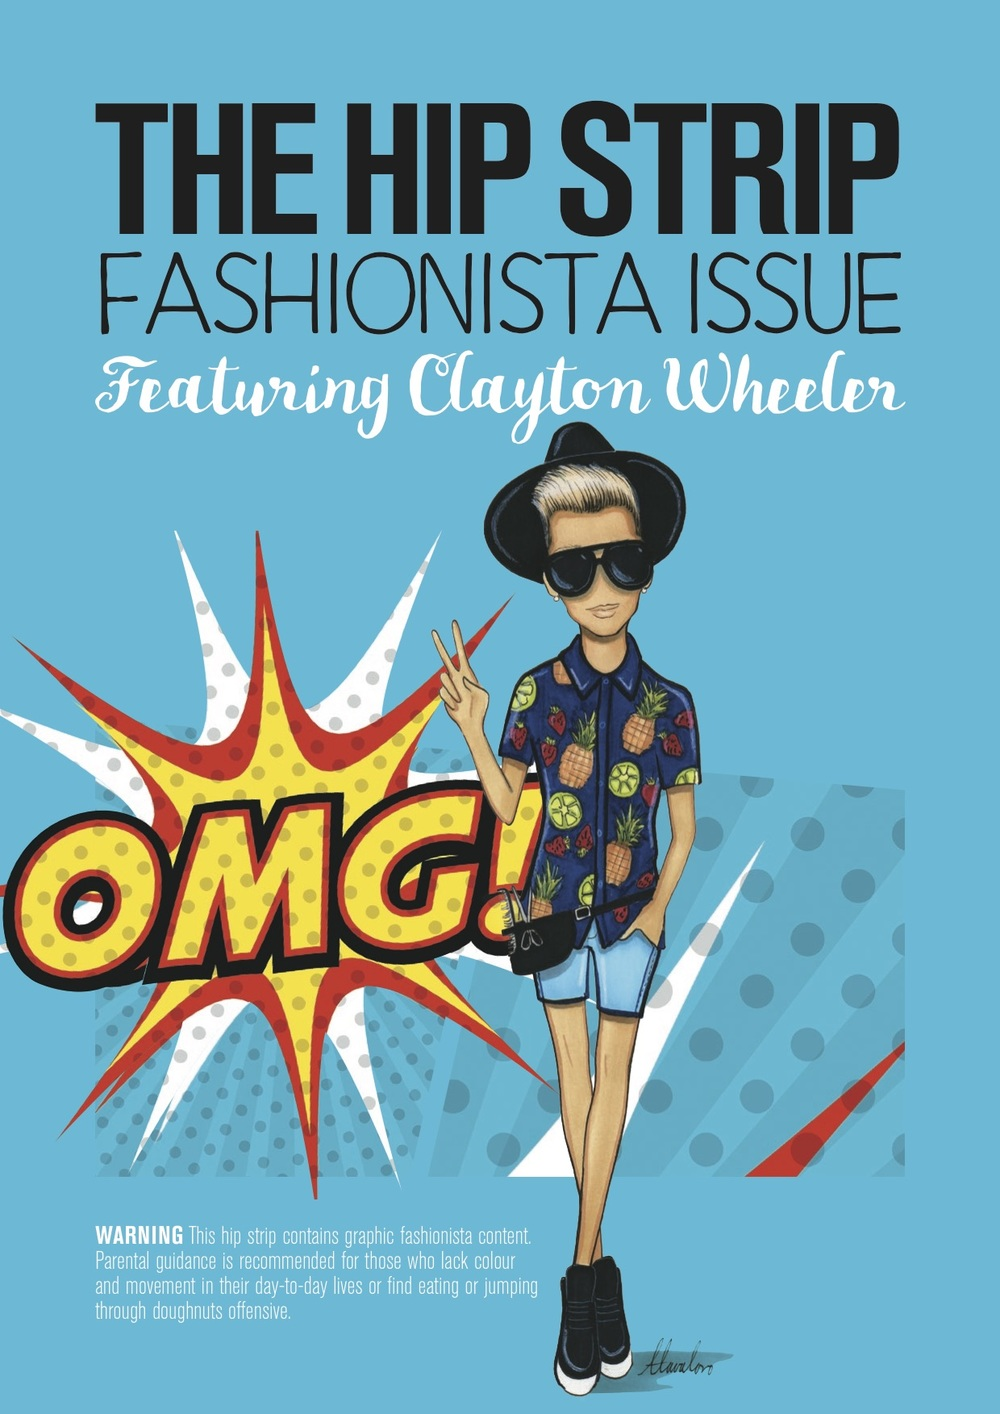 Clayton Wheeler Hot Shots Fashionista Finalist 2016